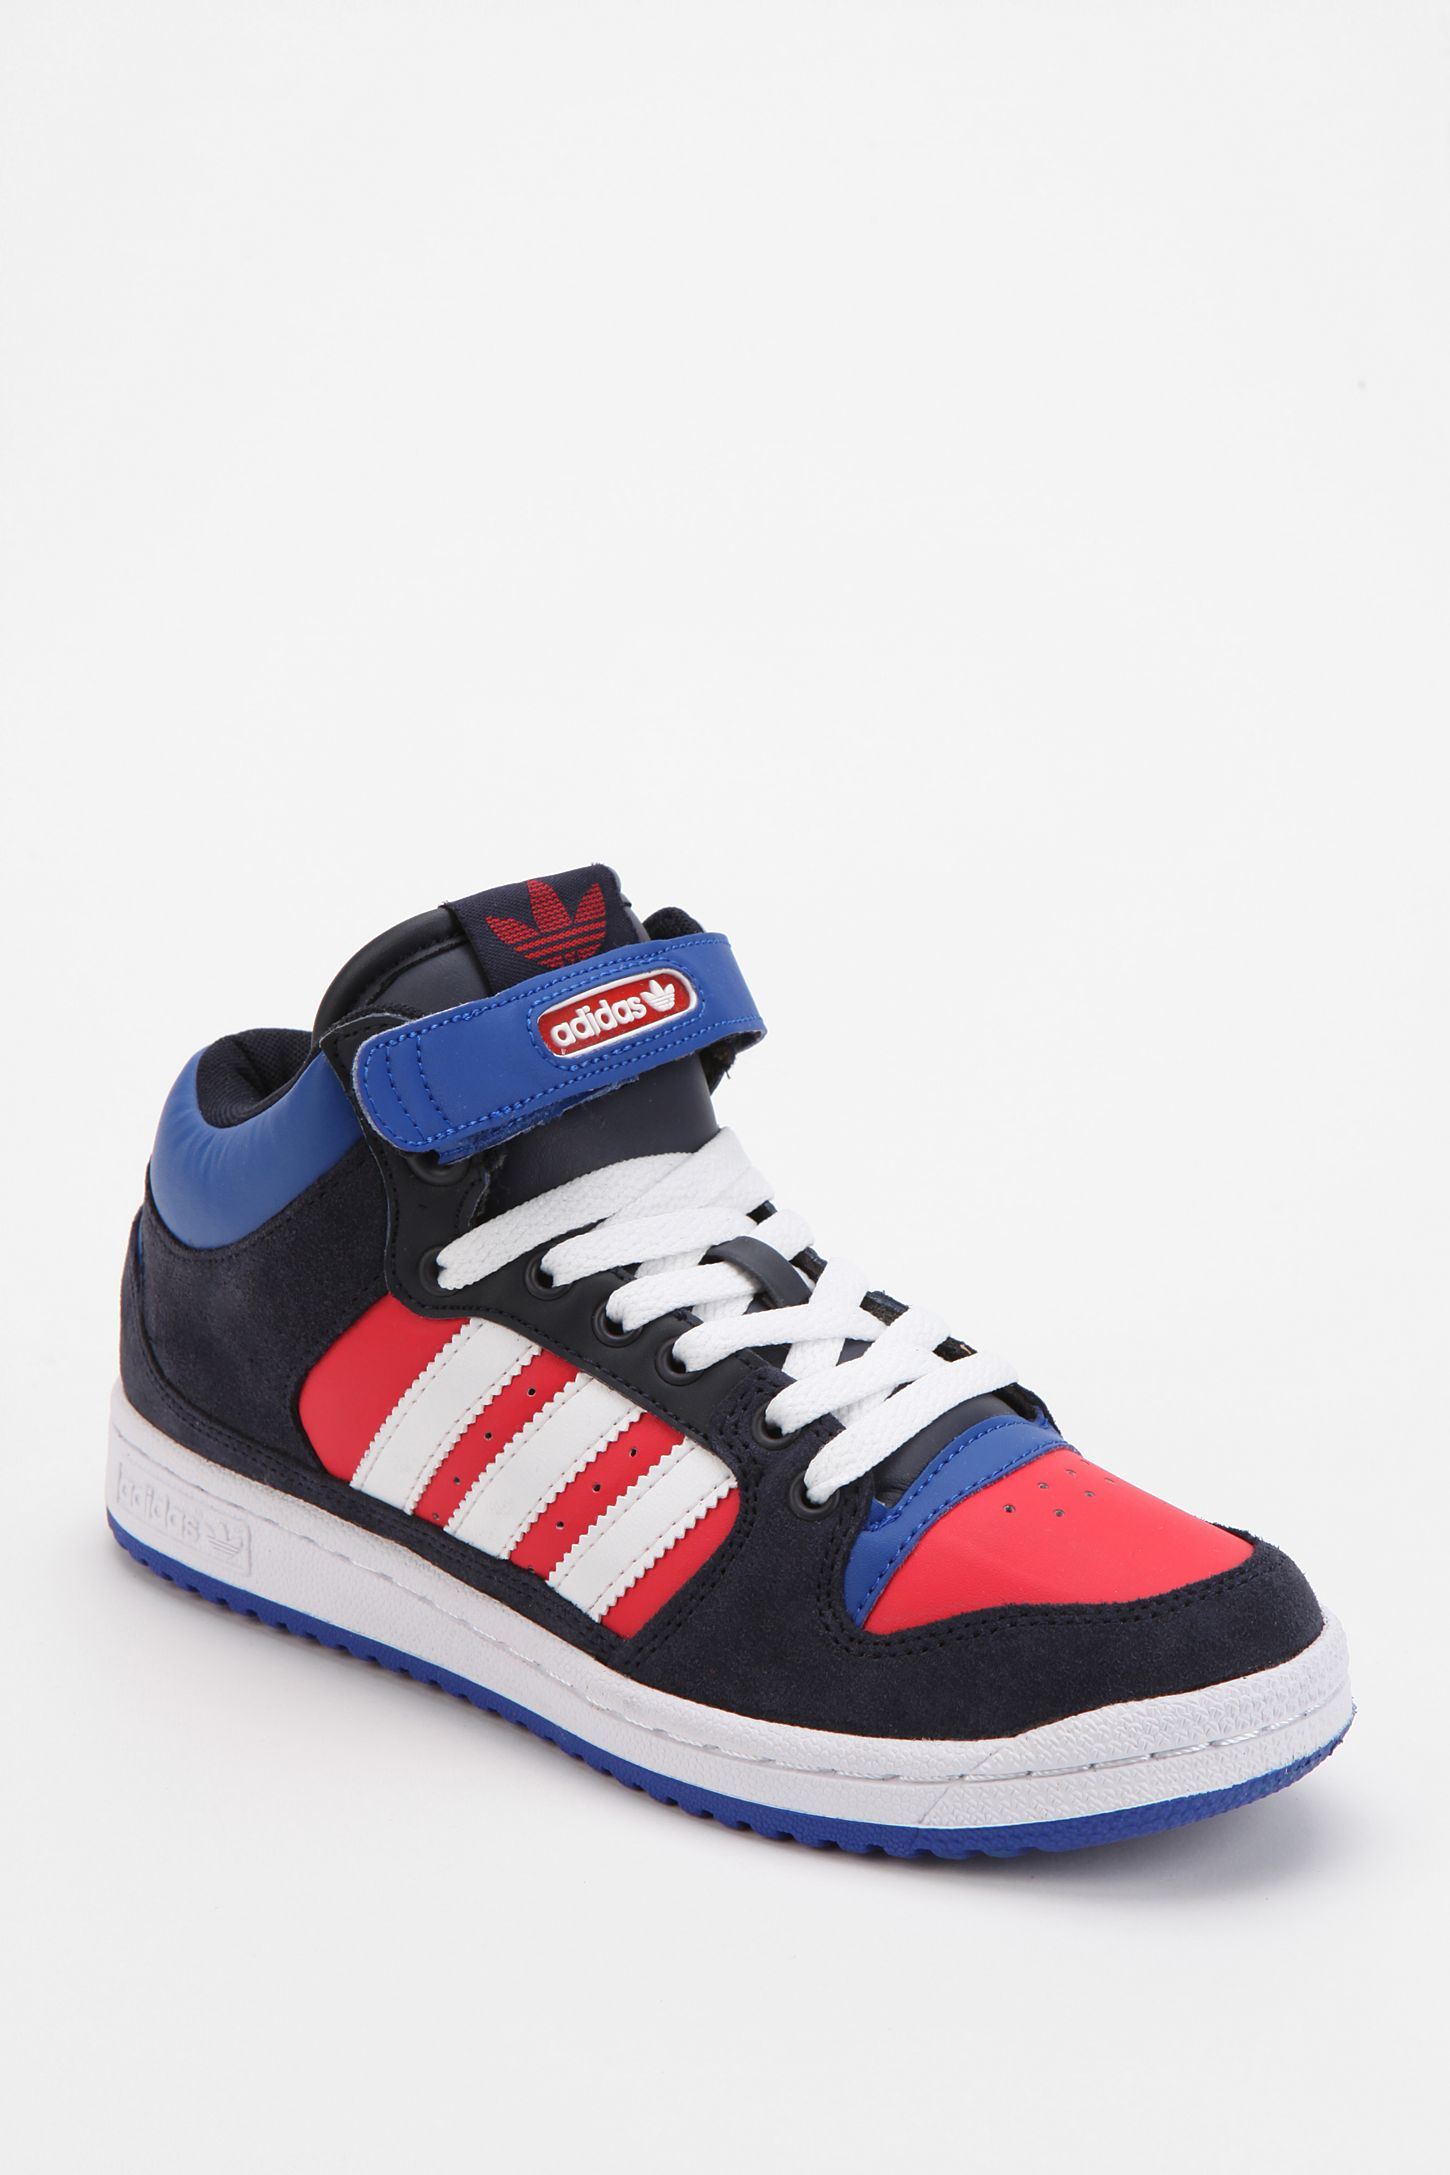 new product a8a36 f7b40 adidas Decade Mid-Rise Sneaker   Urban Outfitters